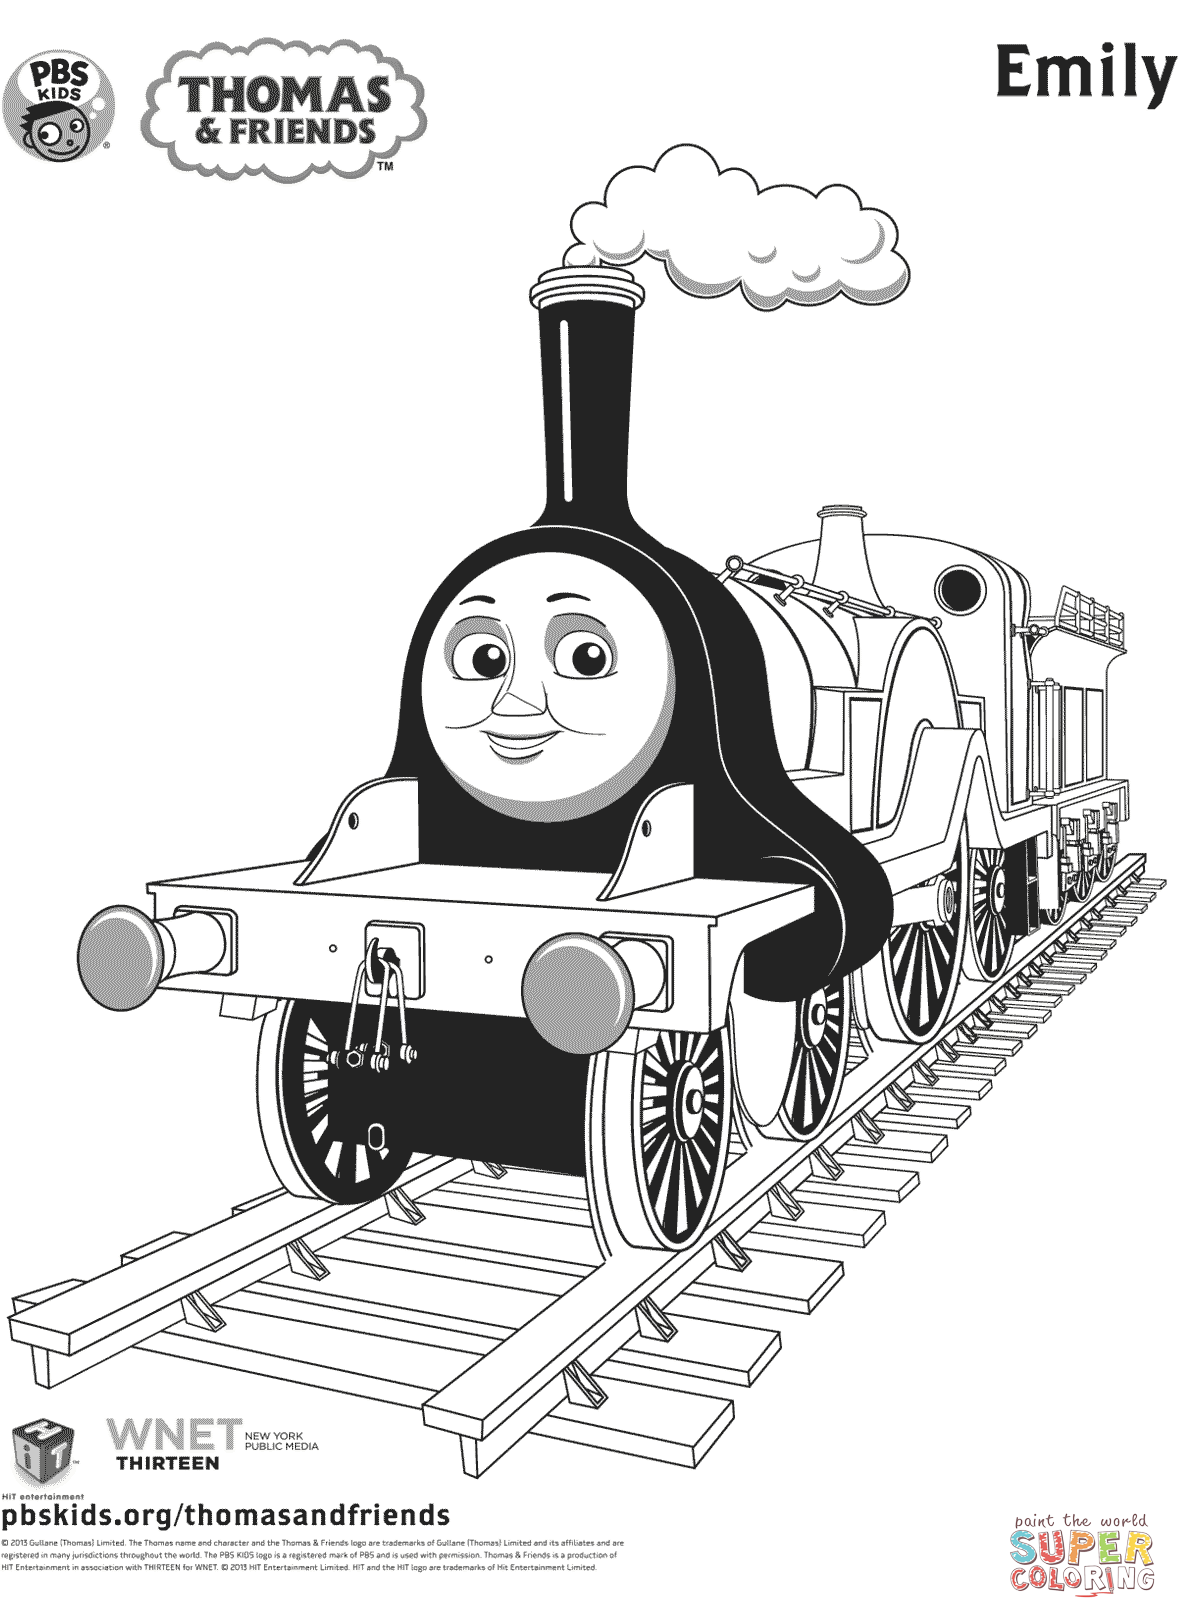 thomas and his friends coloring pages edward from thomas friends coloring page free his friends coloring thomas and pages